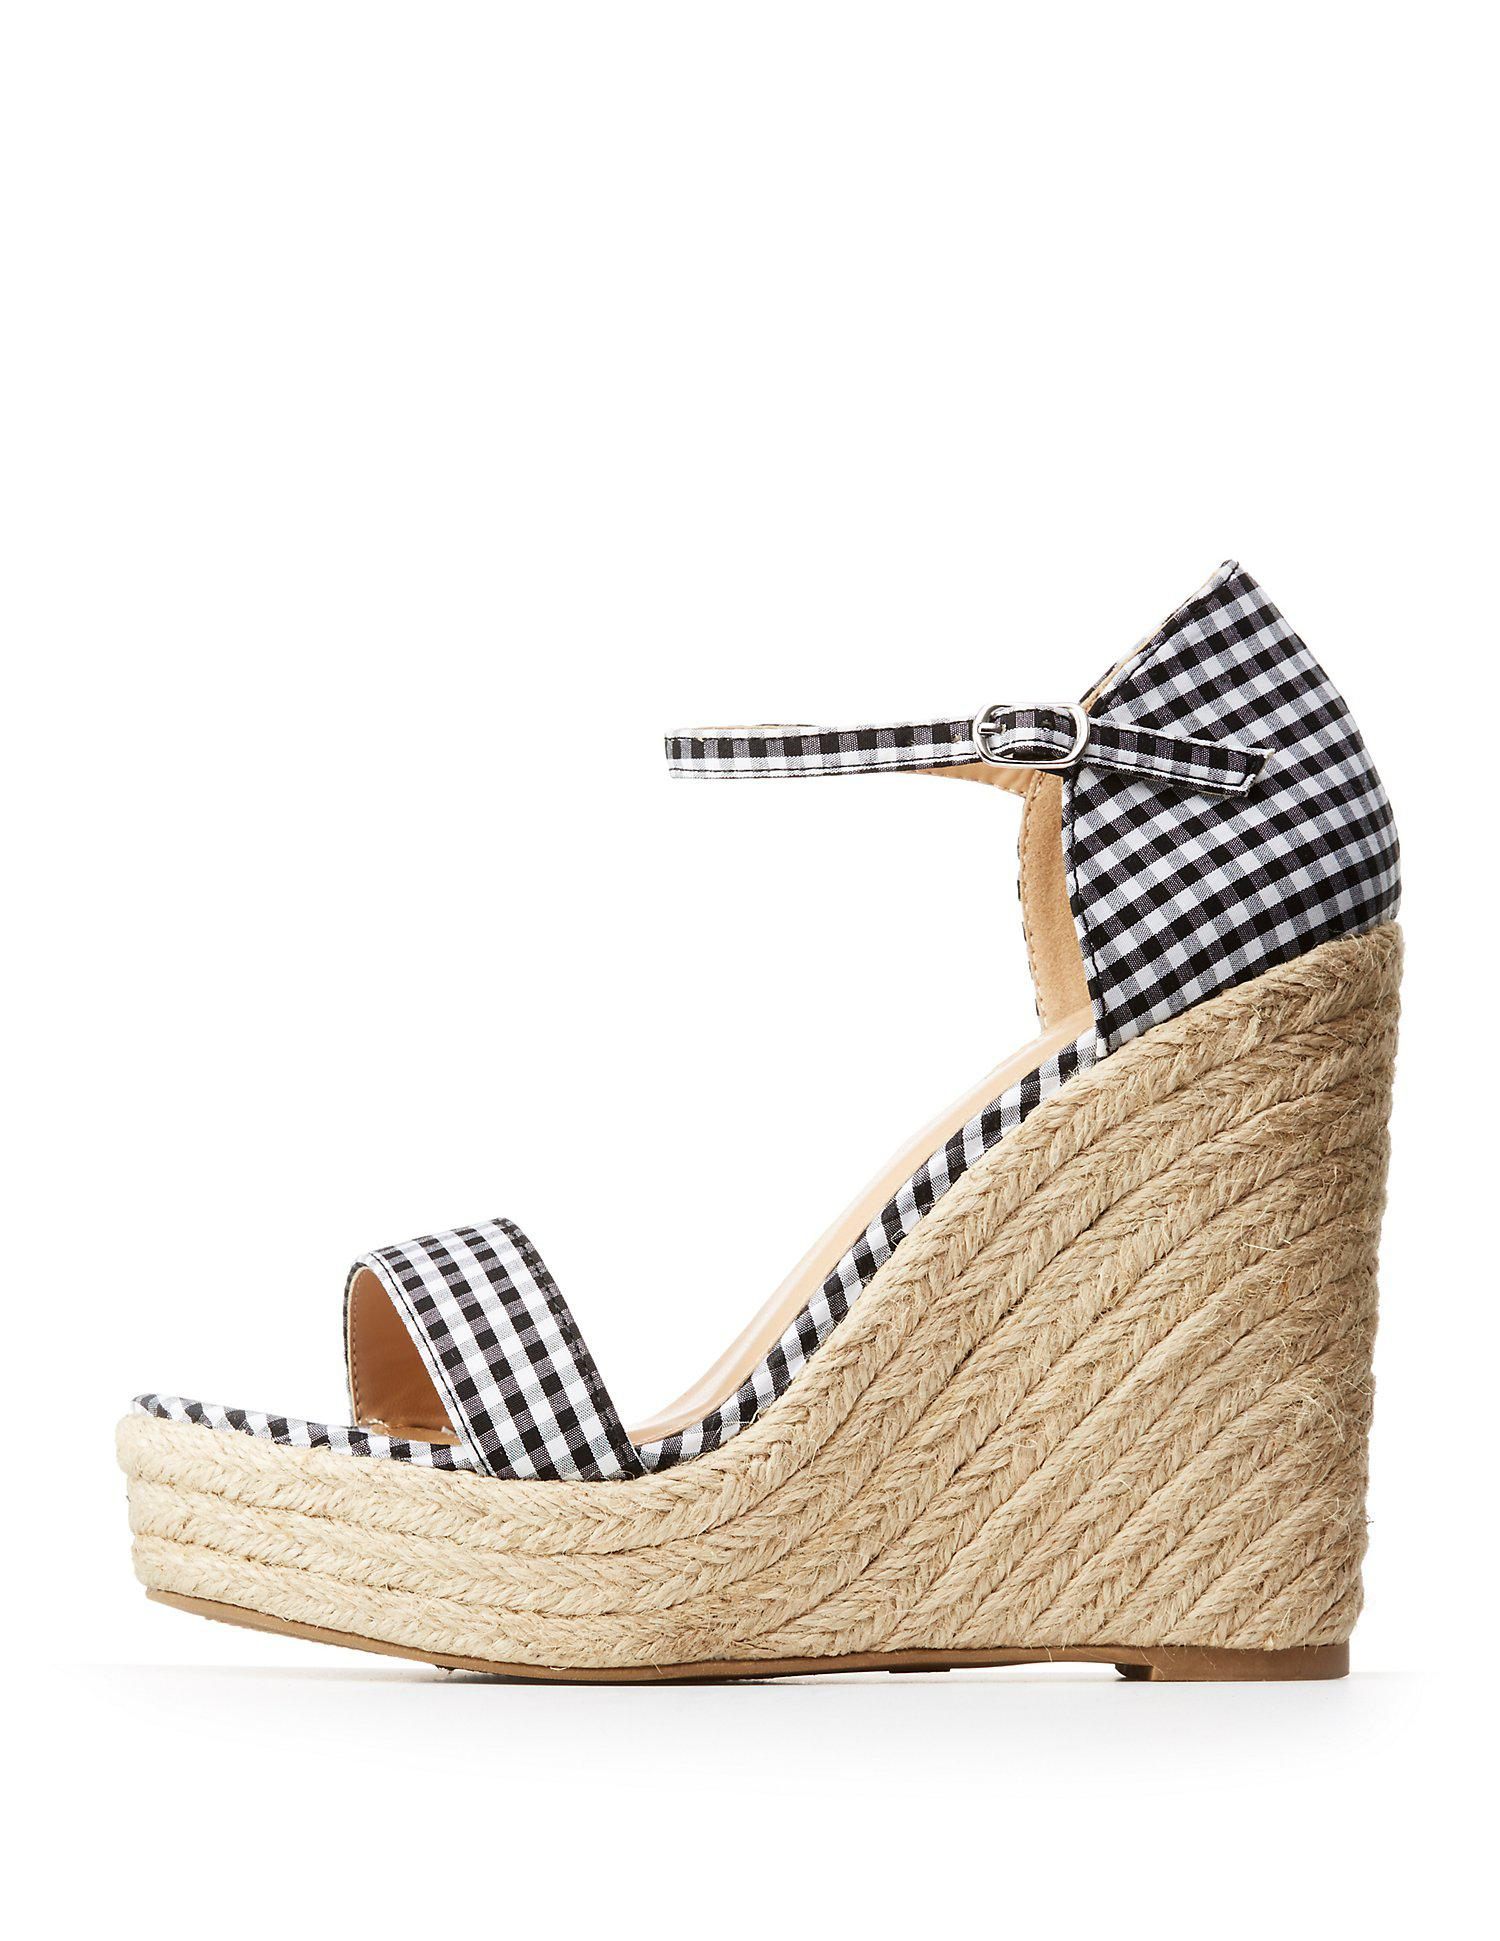 8a671b1d774c Lyst charlotte russe gingham espadrille wedge sandals in black jpg  1500x1941 Charlotte russe wedge sandals